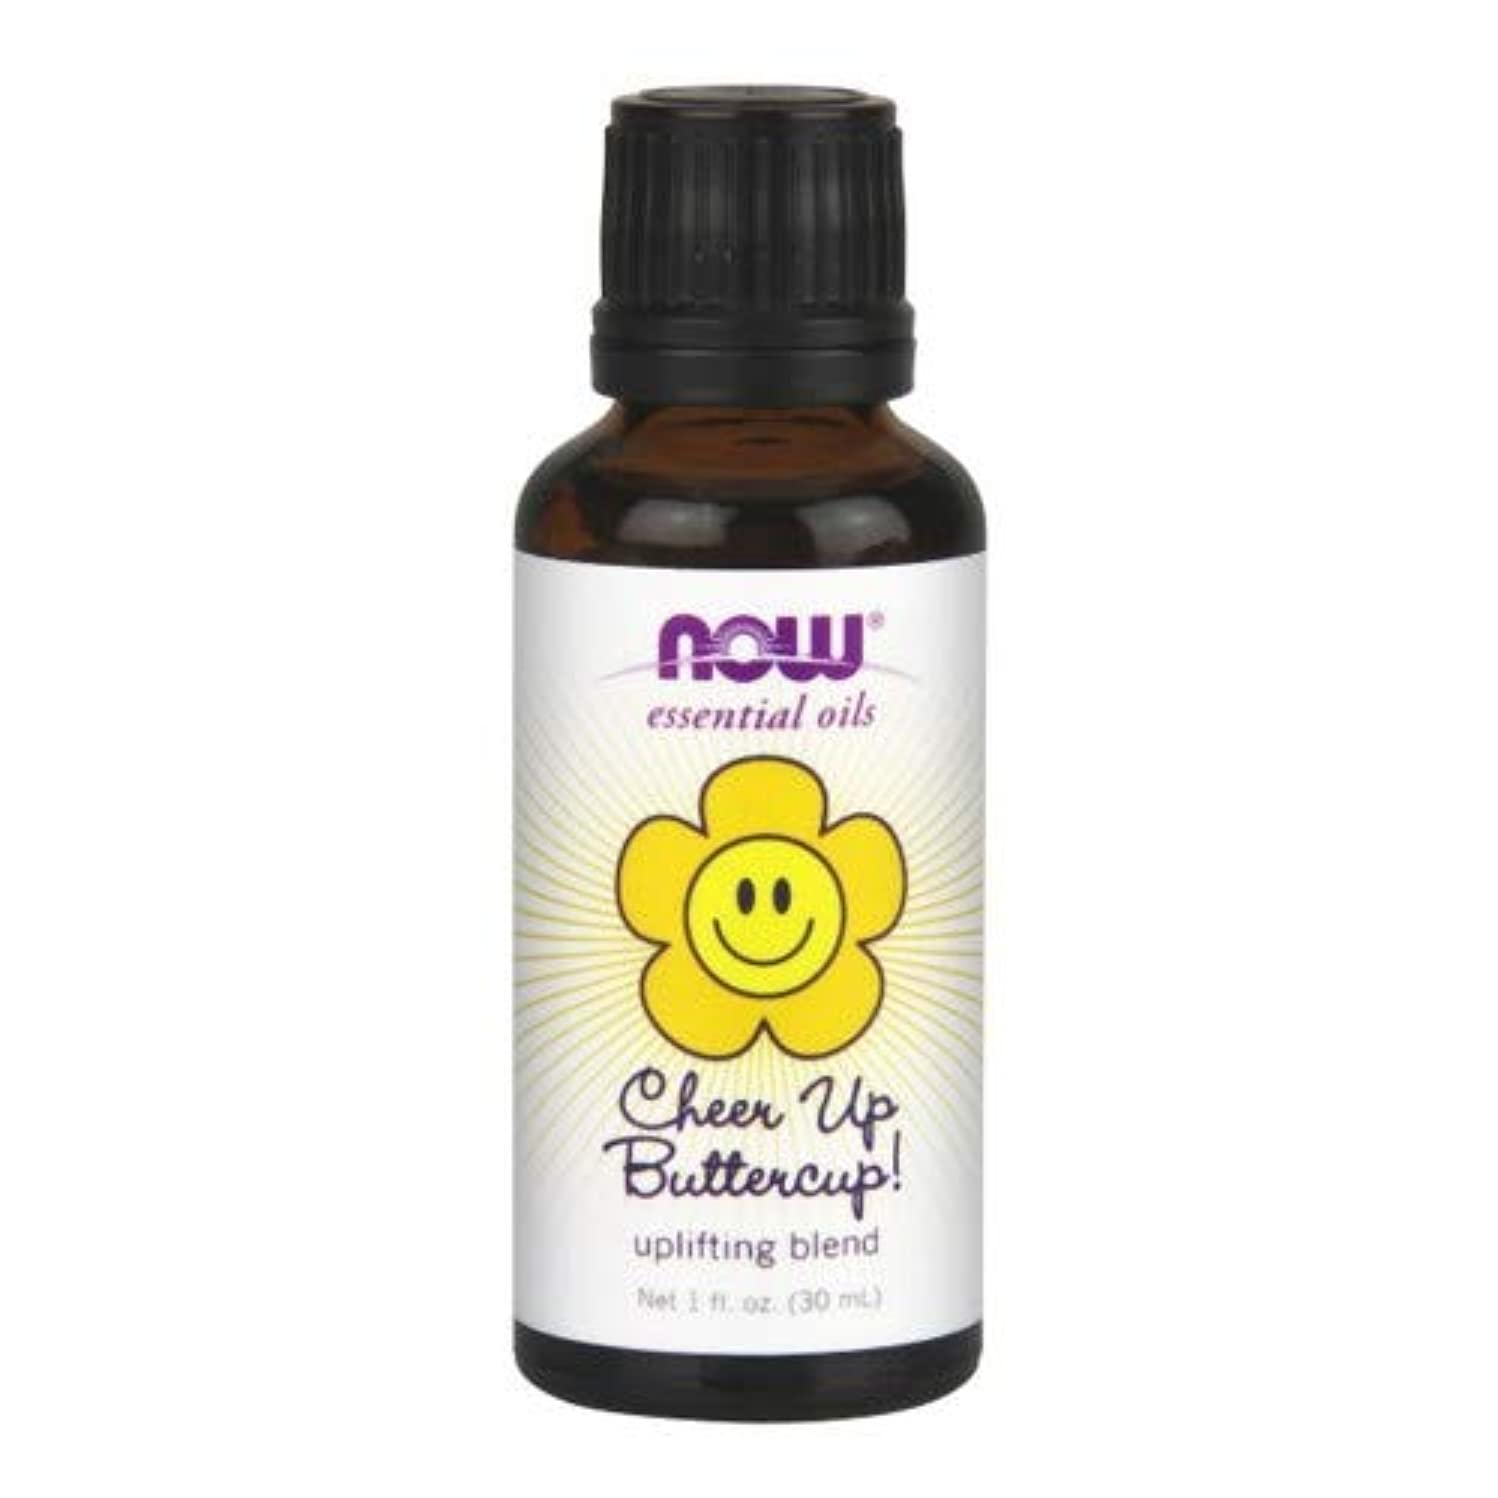 NOW CHEER UP BUTTERUP ESSENTIAL OIL